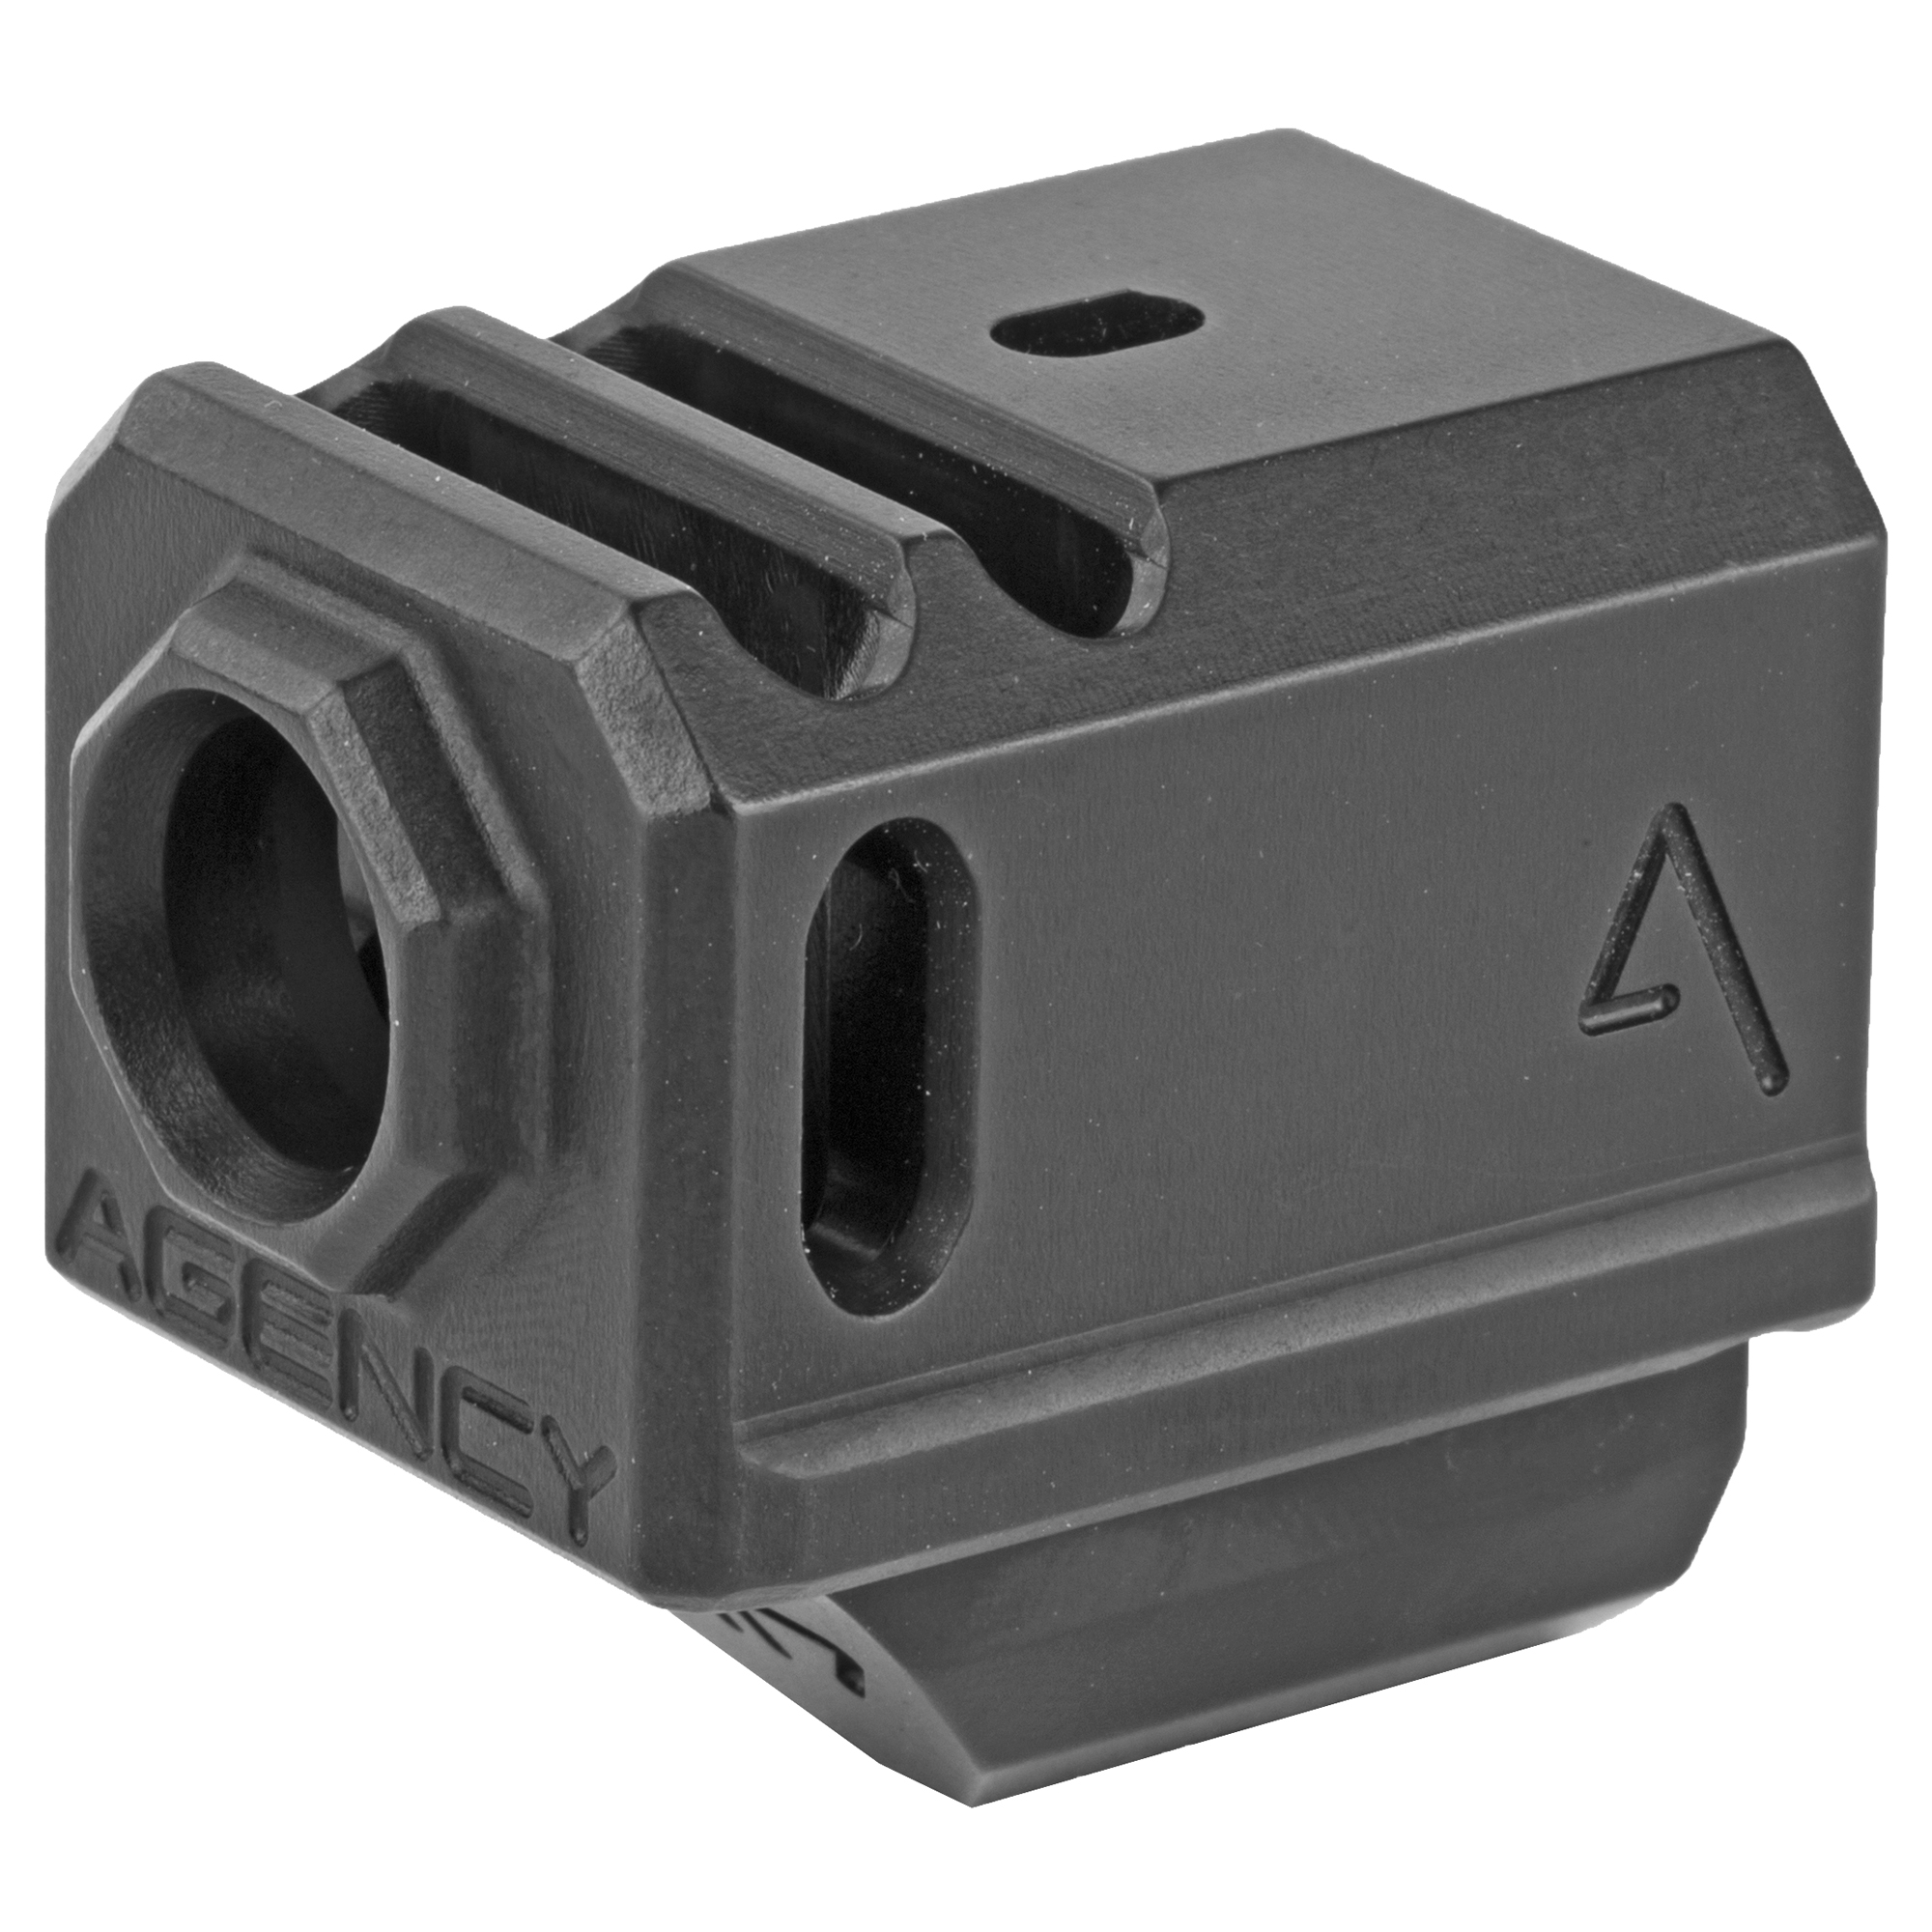 """The Agency Arms 417 Compensator is threaded with the standard 1/2x28 thread pitch. It features a 2 chamber design (2 vertical ports and 2 side venting ports. It is designed to utilize the OEM recoil spring assembly and it also features a front sight hole"""" allowing you to transfer your existing front sight from your slide to the comp. Compatible with the 17""""19 and 34."""